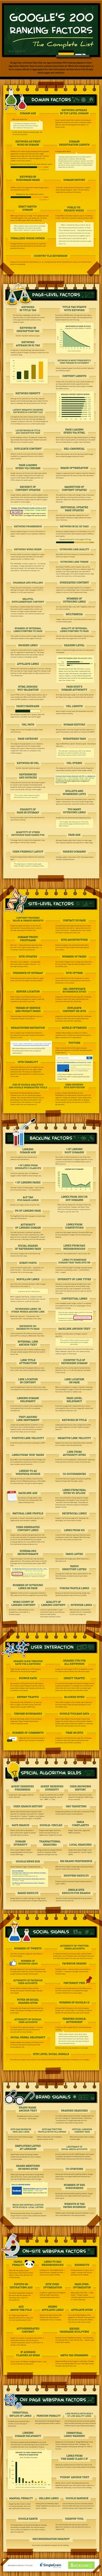 What Are 200 Google Search Ranking Factors For Pages and Website? #seo #Infographic